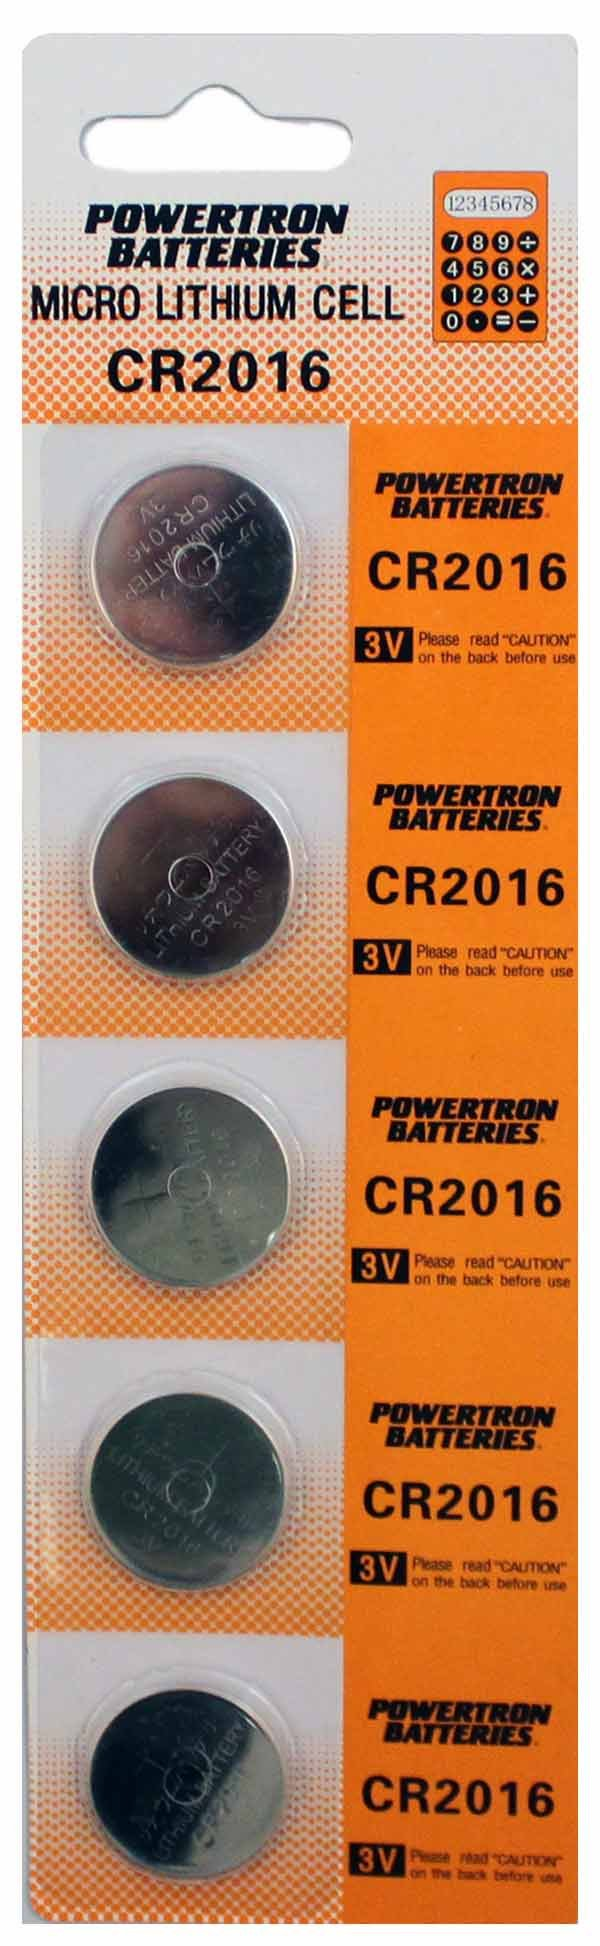 100 x CR2016 Lithium Coin Cell Batteries by Powertron